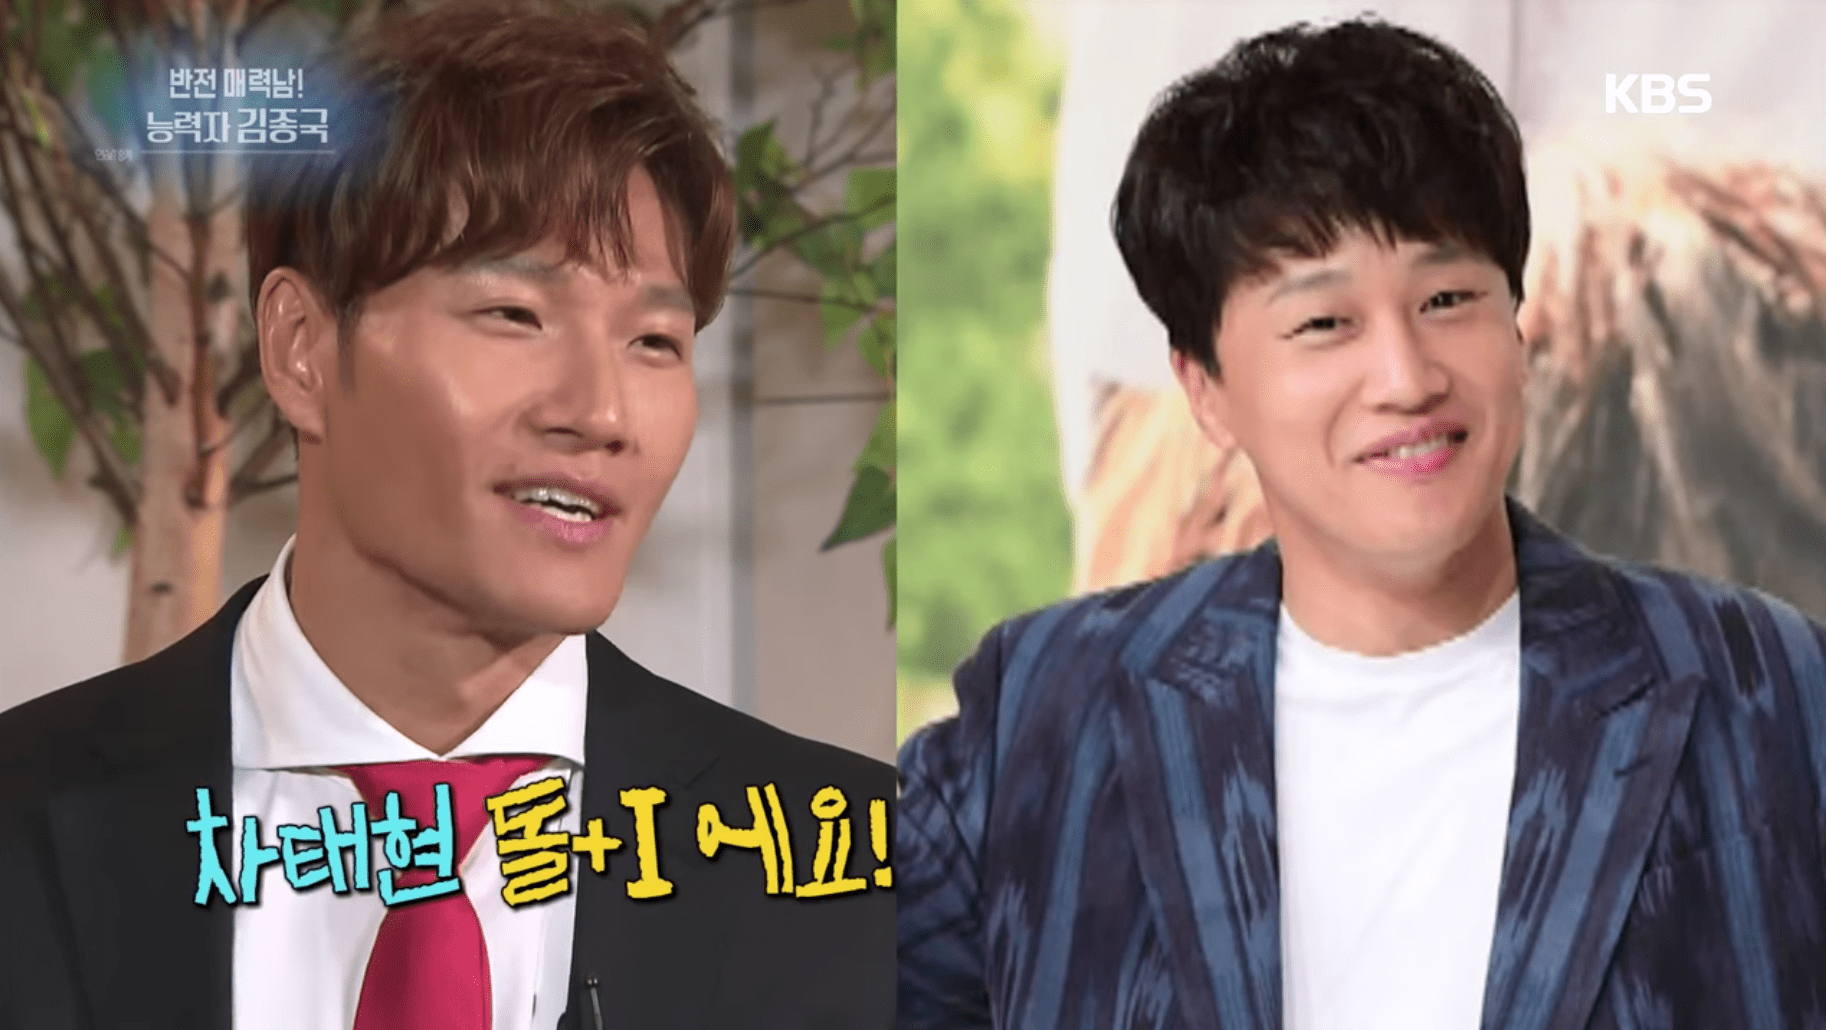 Kim Jong Kook Jokingly Threatens To Sue Cha Tae Hyun For Speculating About A Potential Girlfriend